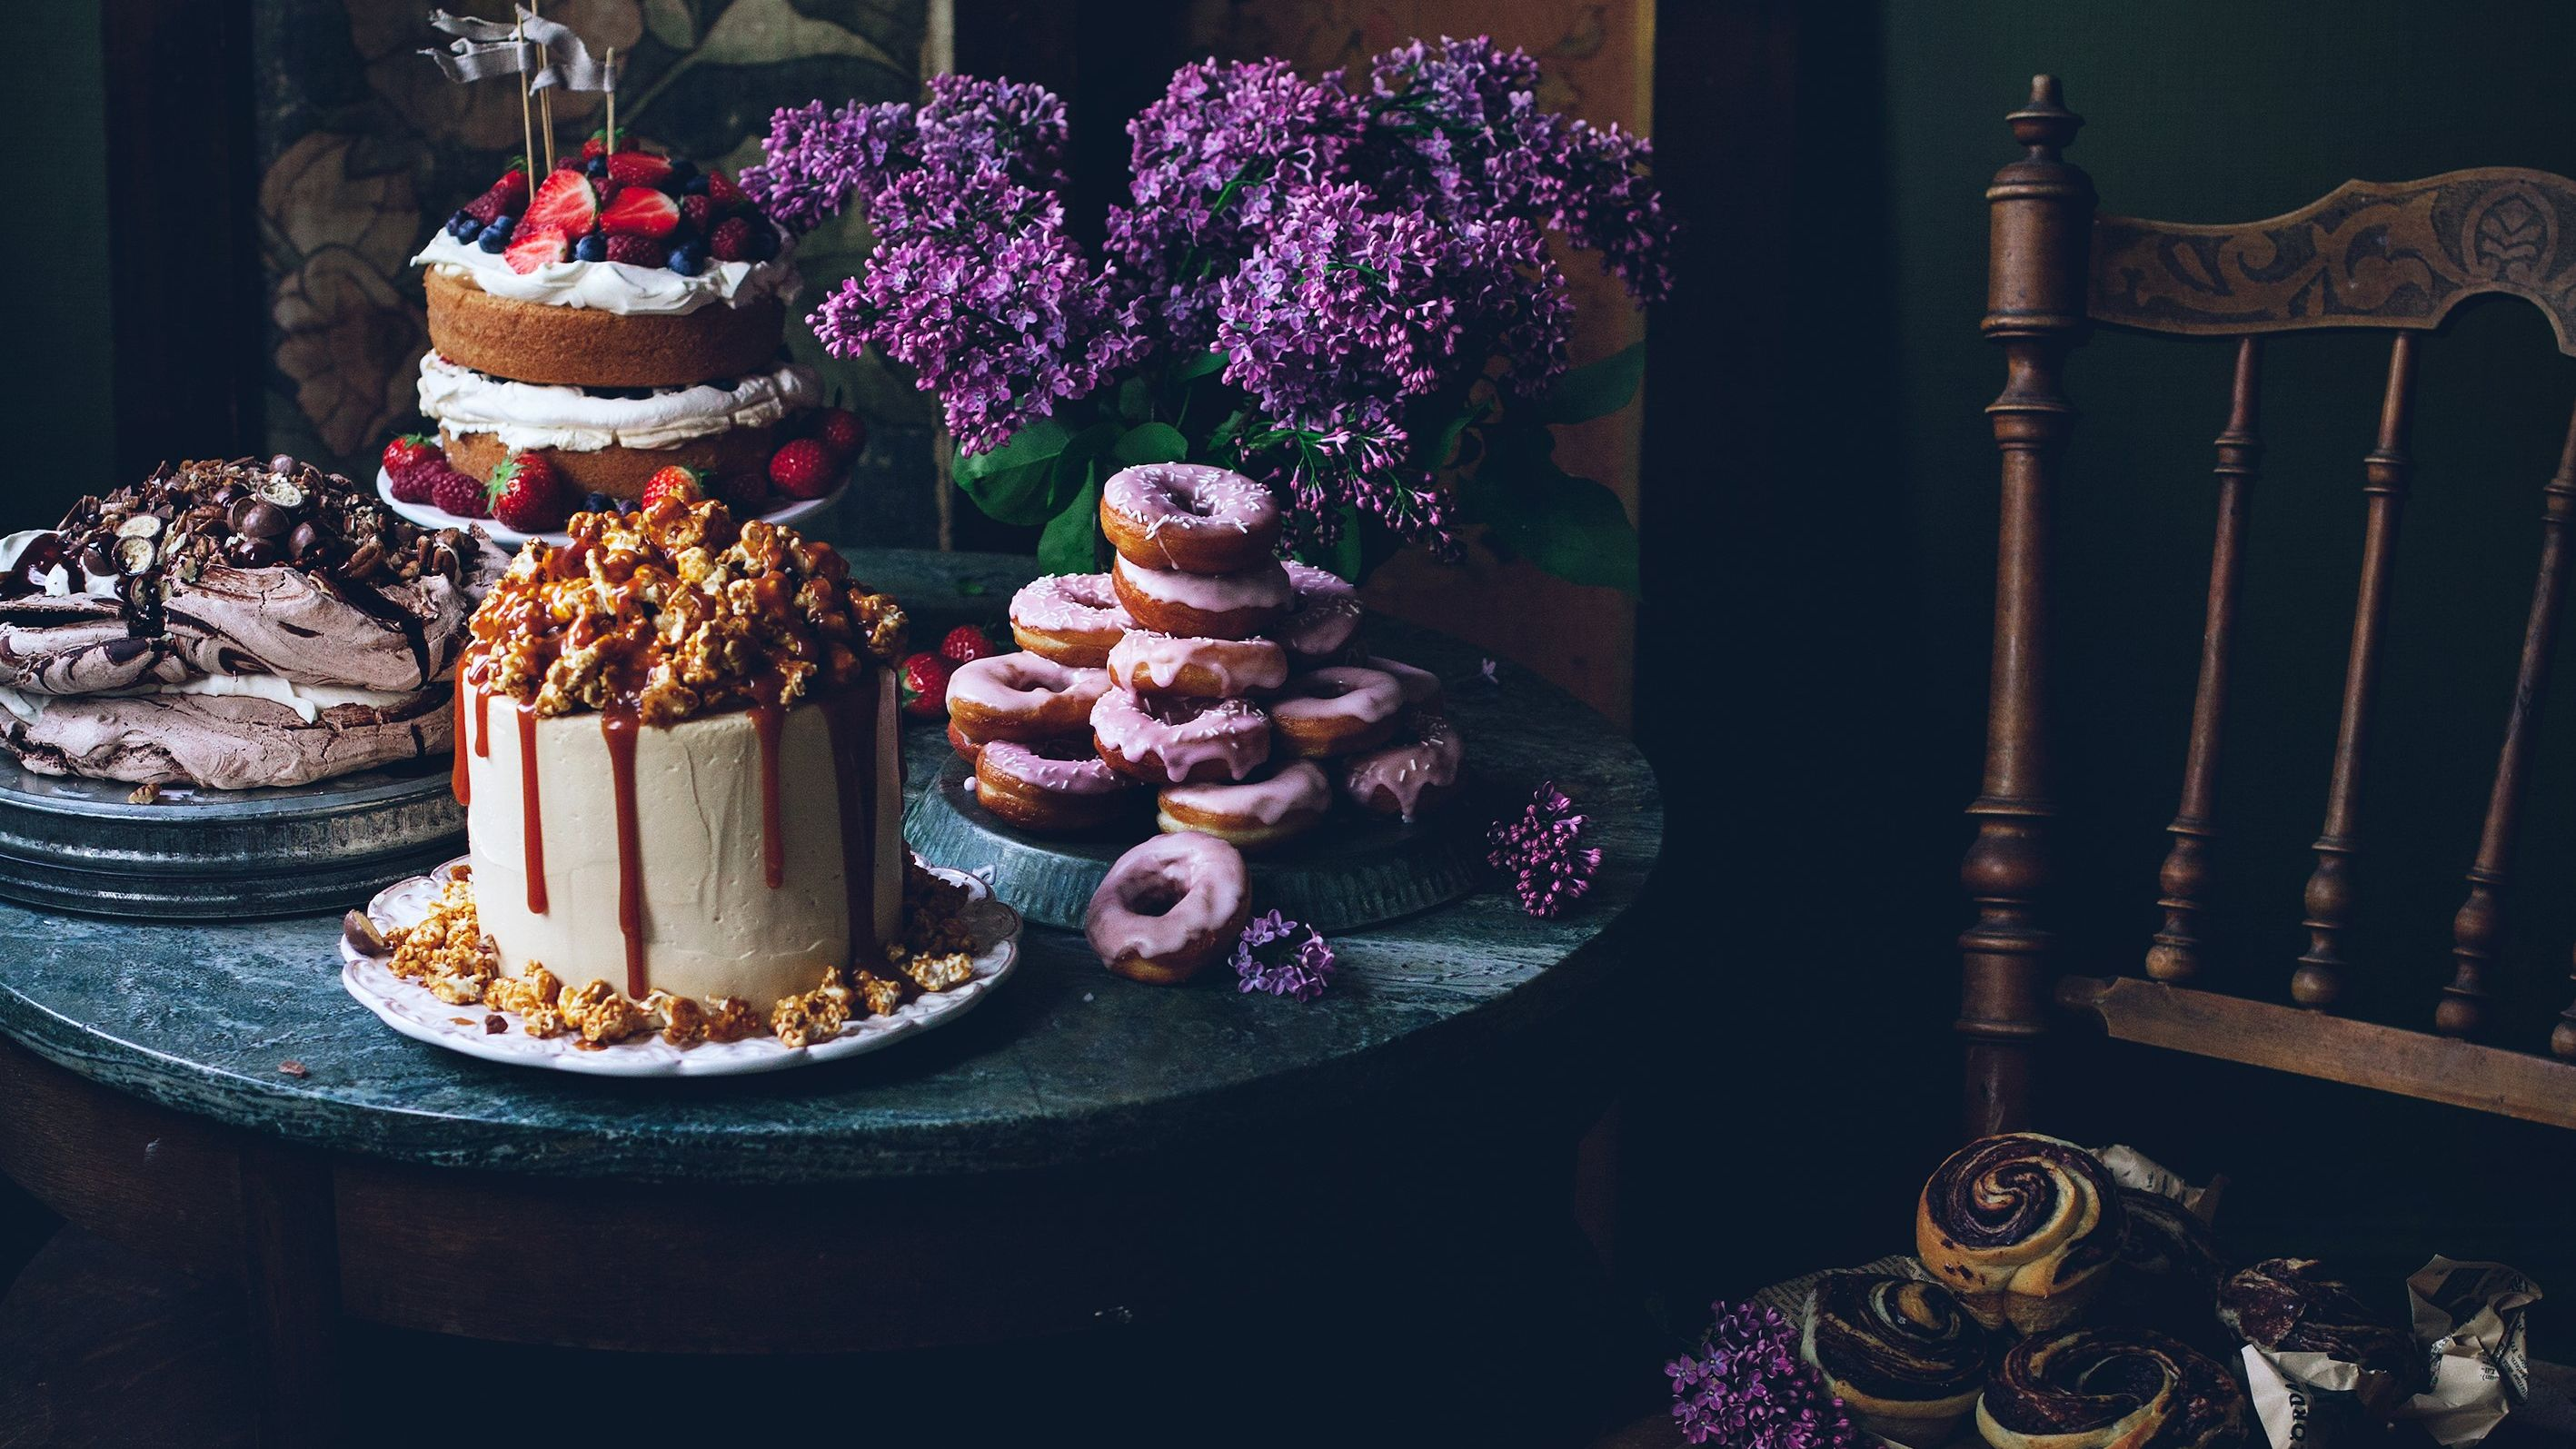 A table display with cakes, meringue, iced donuts and pastries.